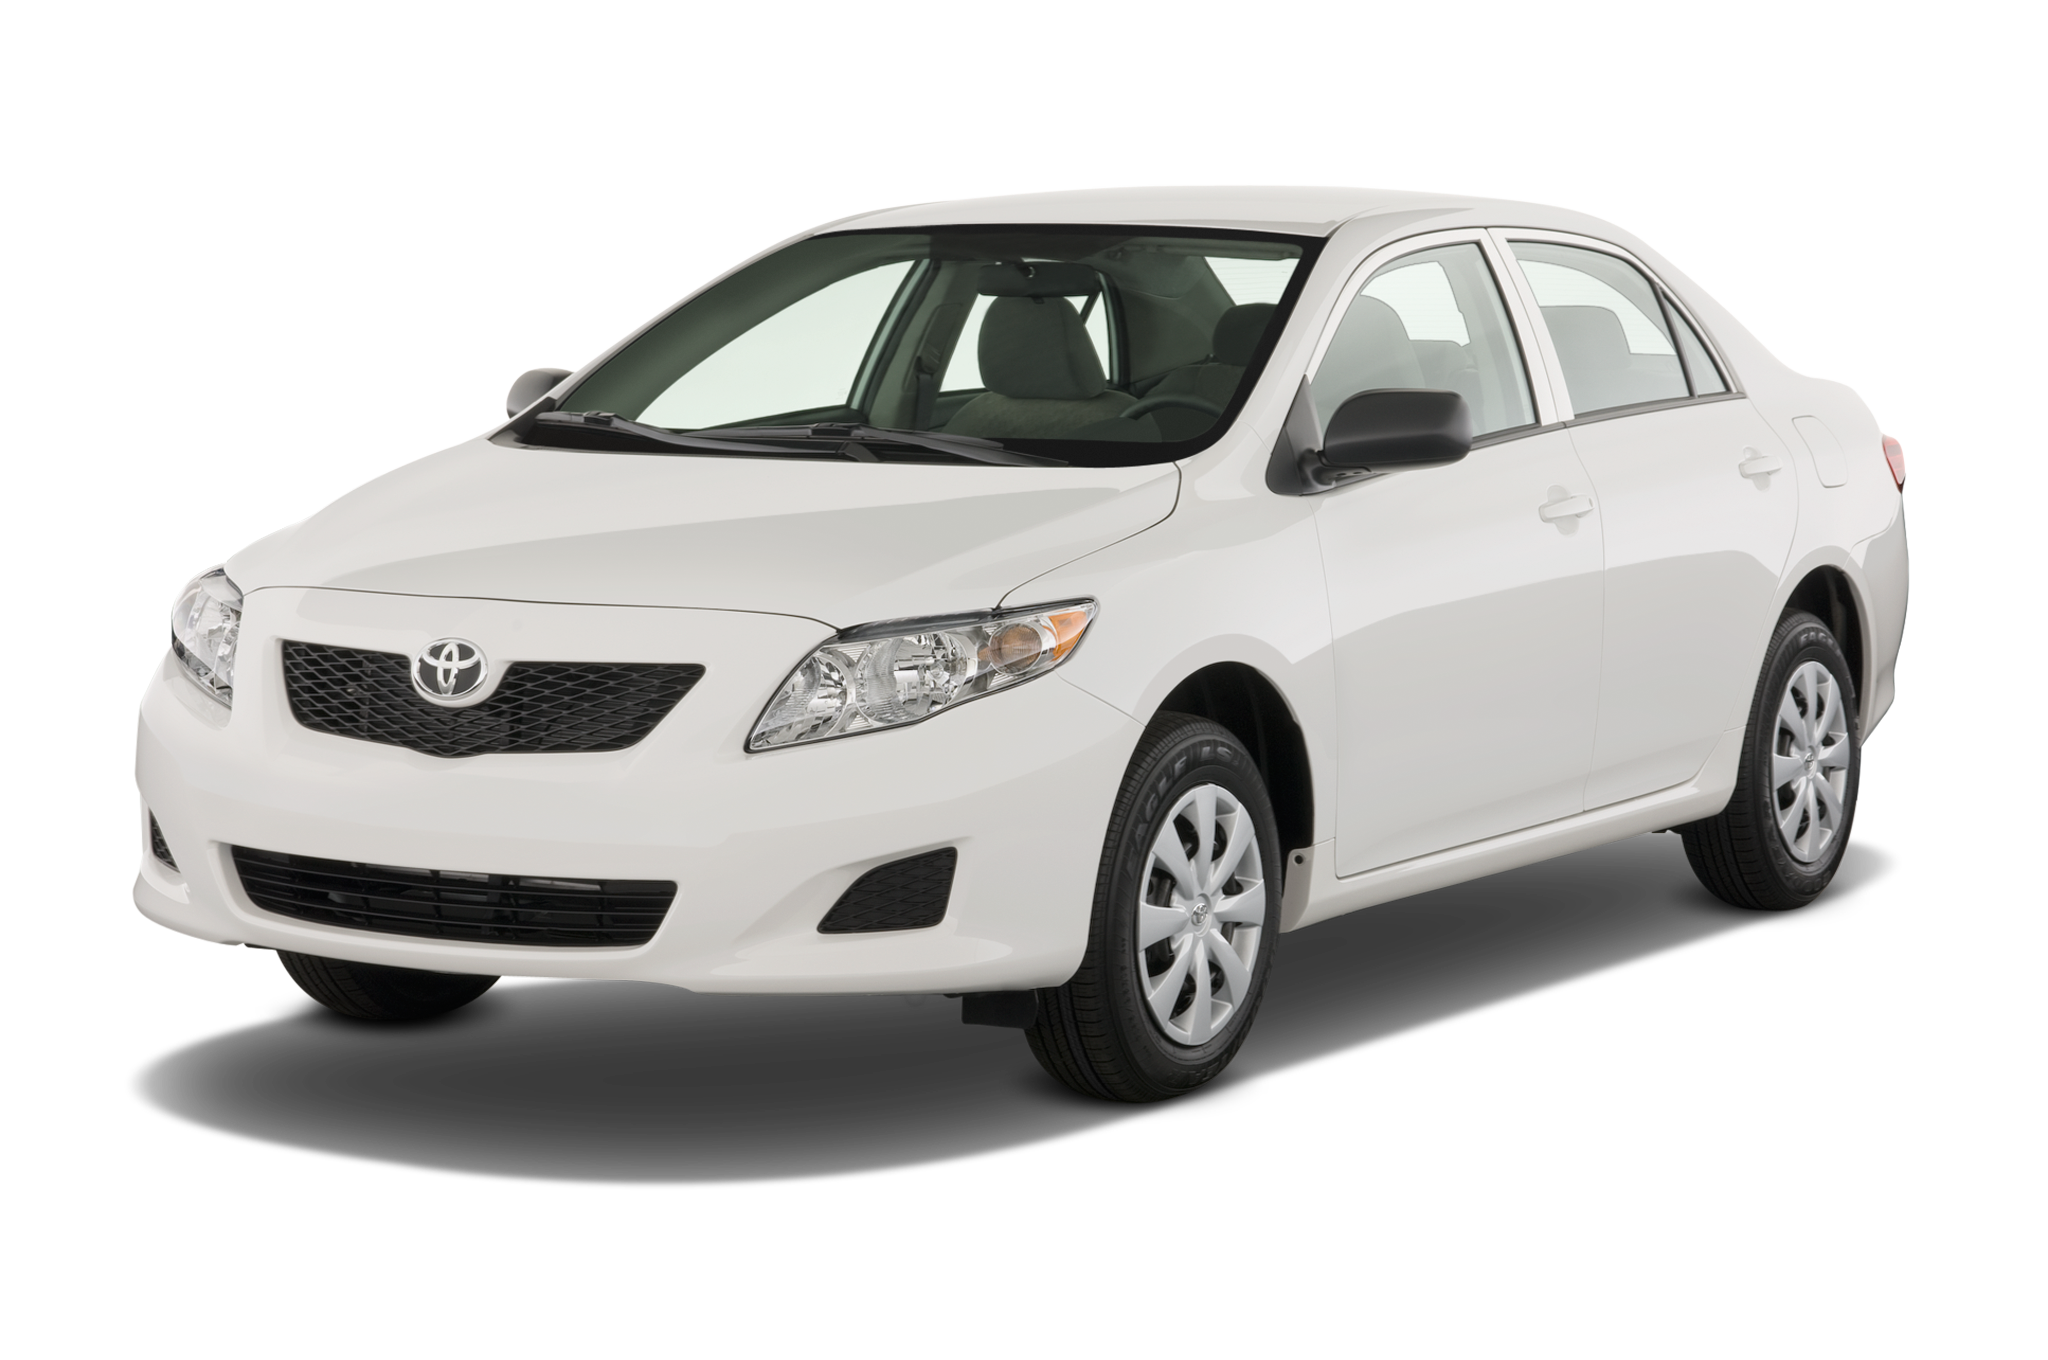 2010 toyota corolla reviews msn autos. Black Bedroom Furniture Sets. Home Design Ideas